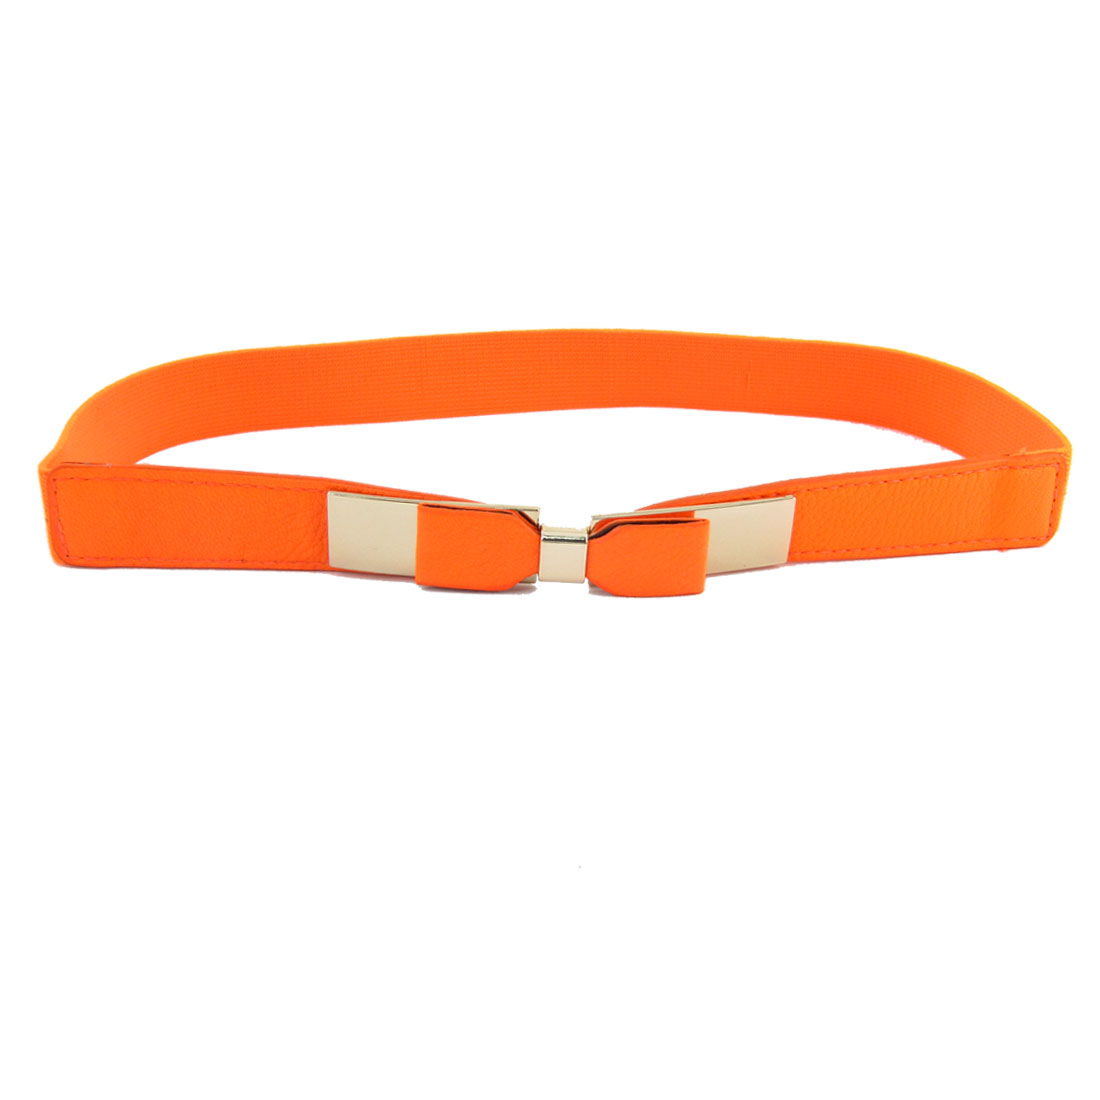 Faux Leather Bowknot Accent Metal Buckle Elastic Cinch Waistbelt Orange for Lady